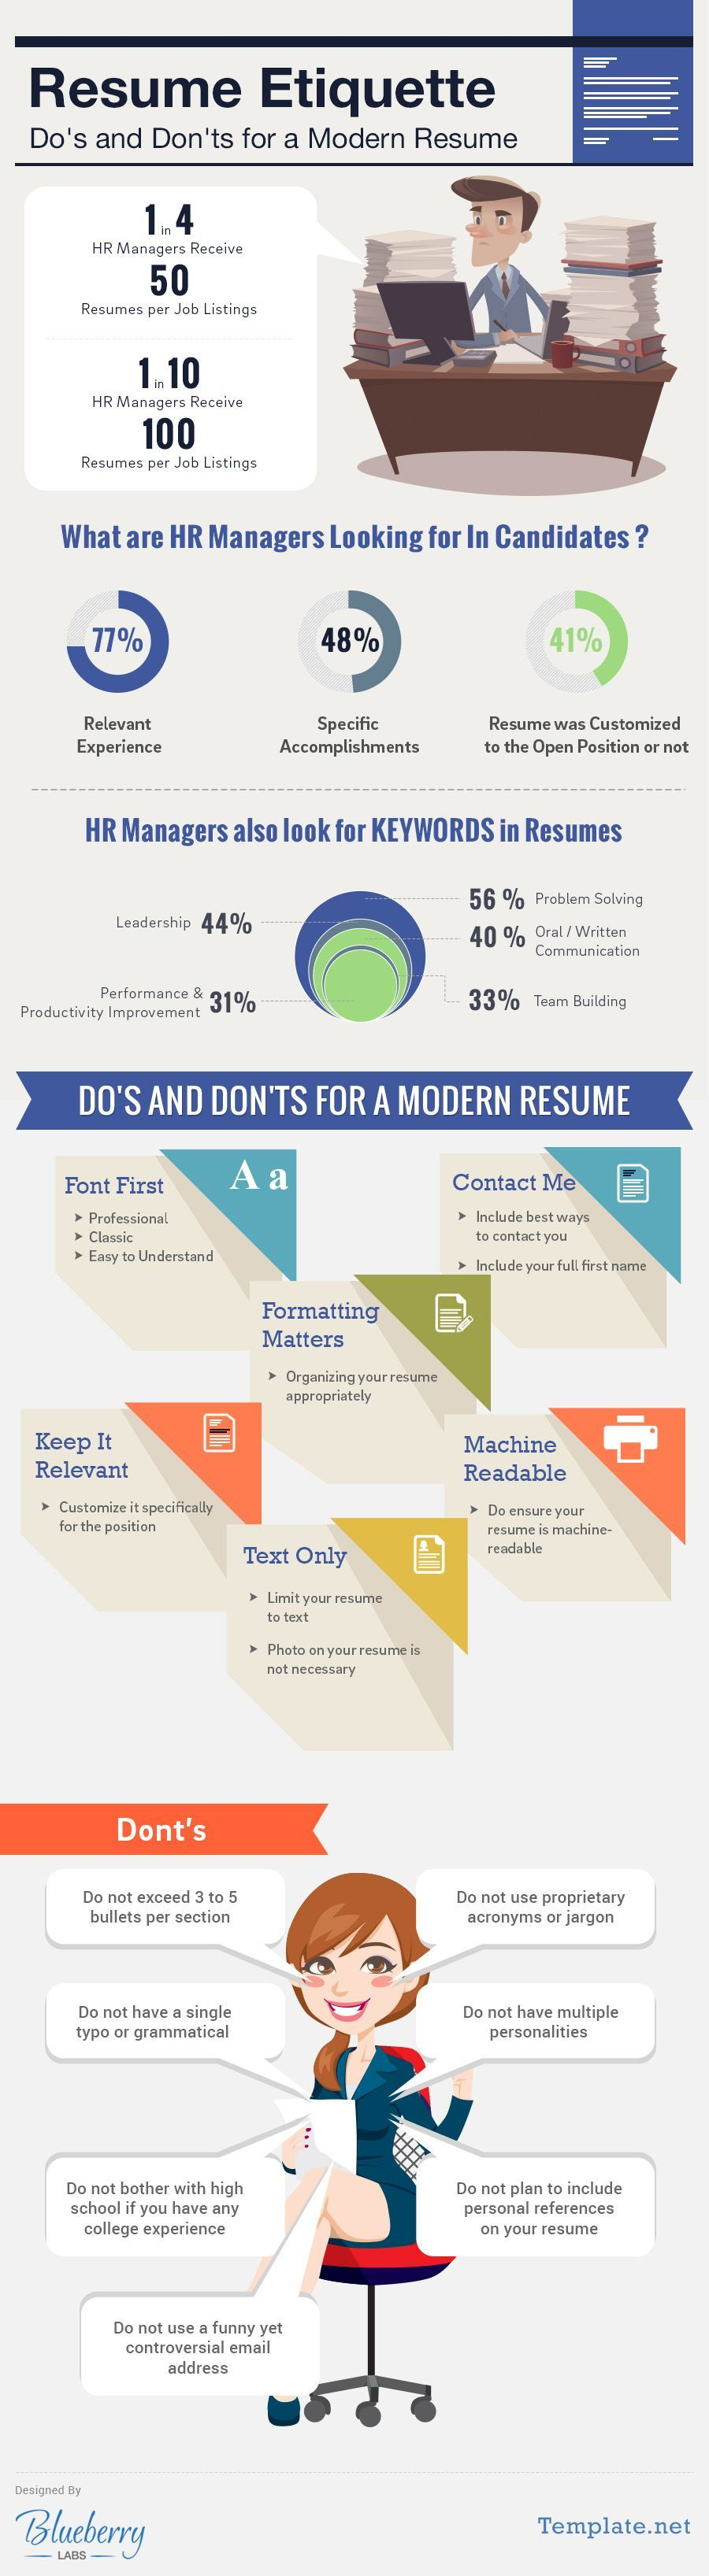 Resume etiquette dos donts for a modern resume with